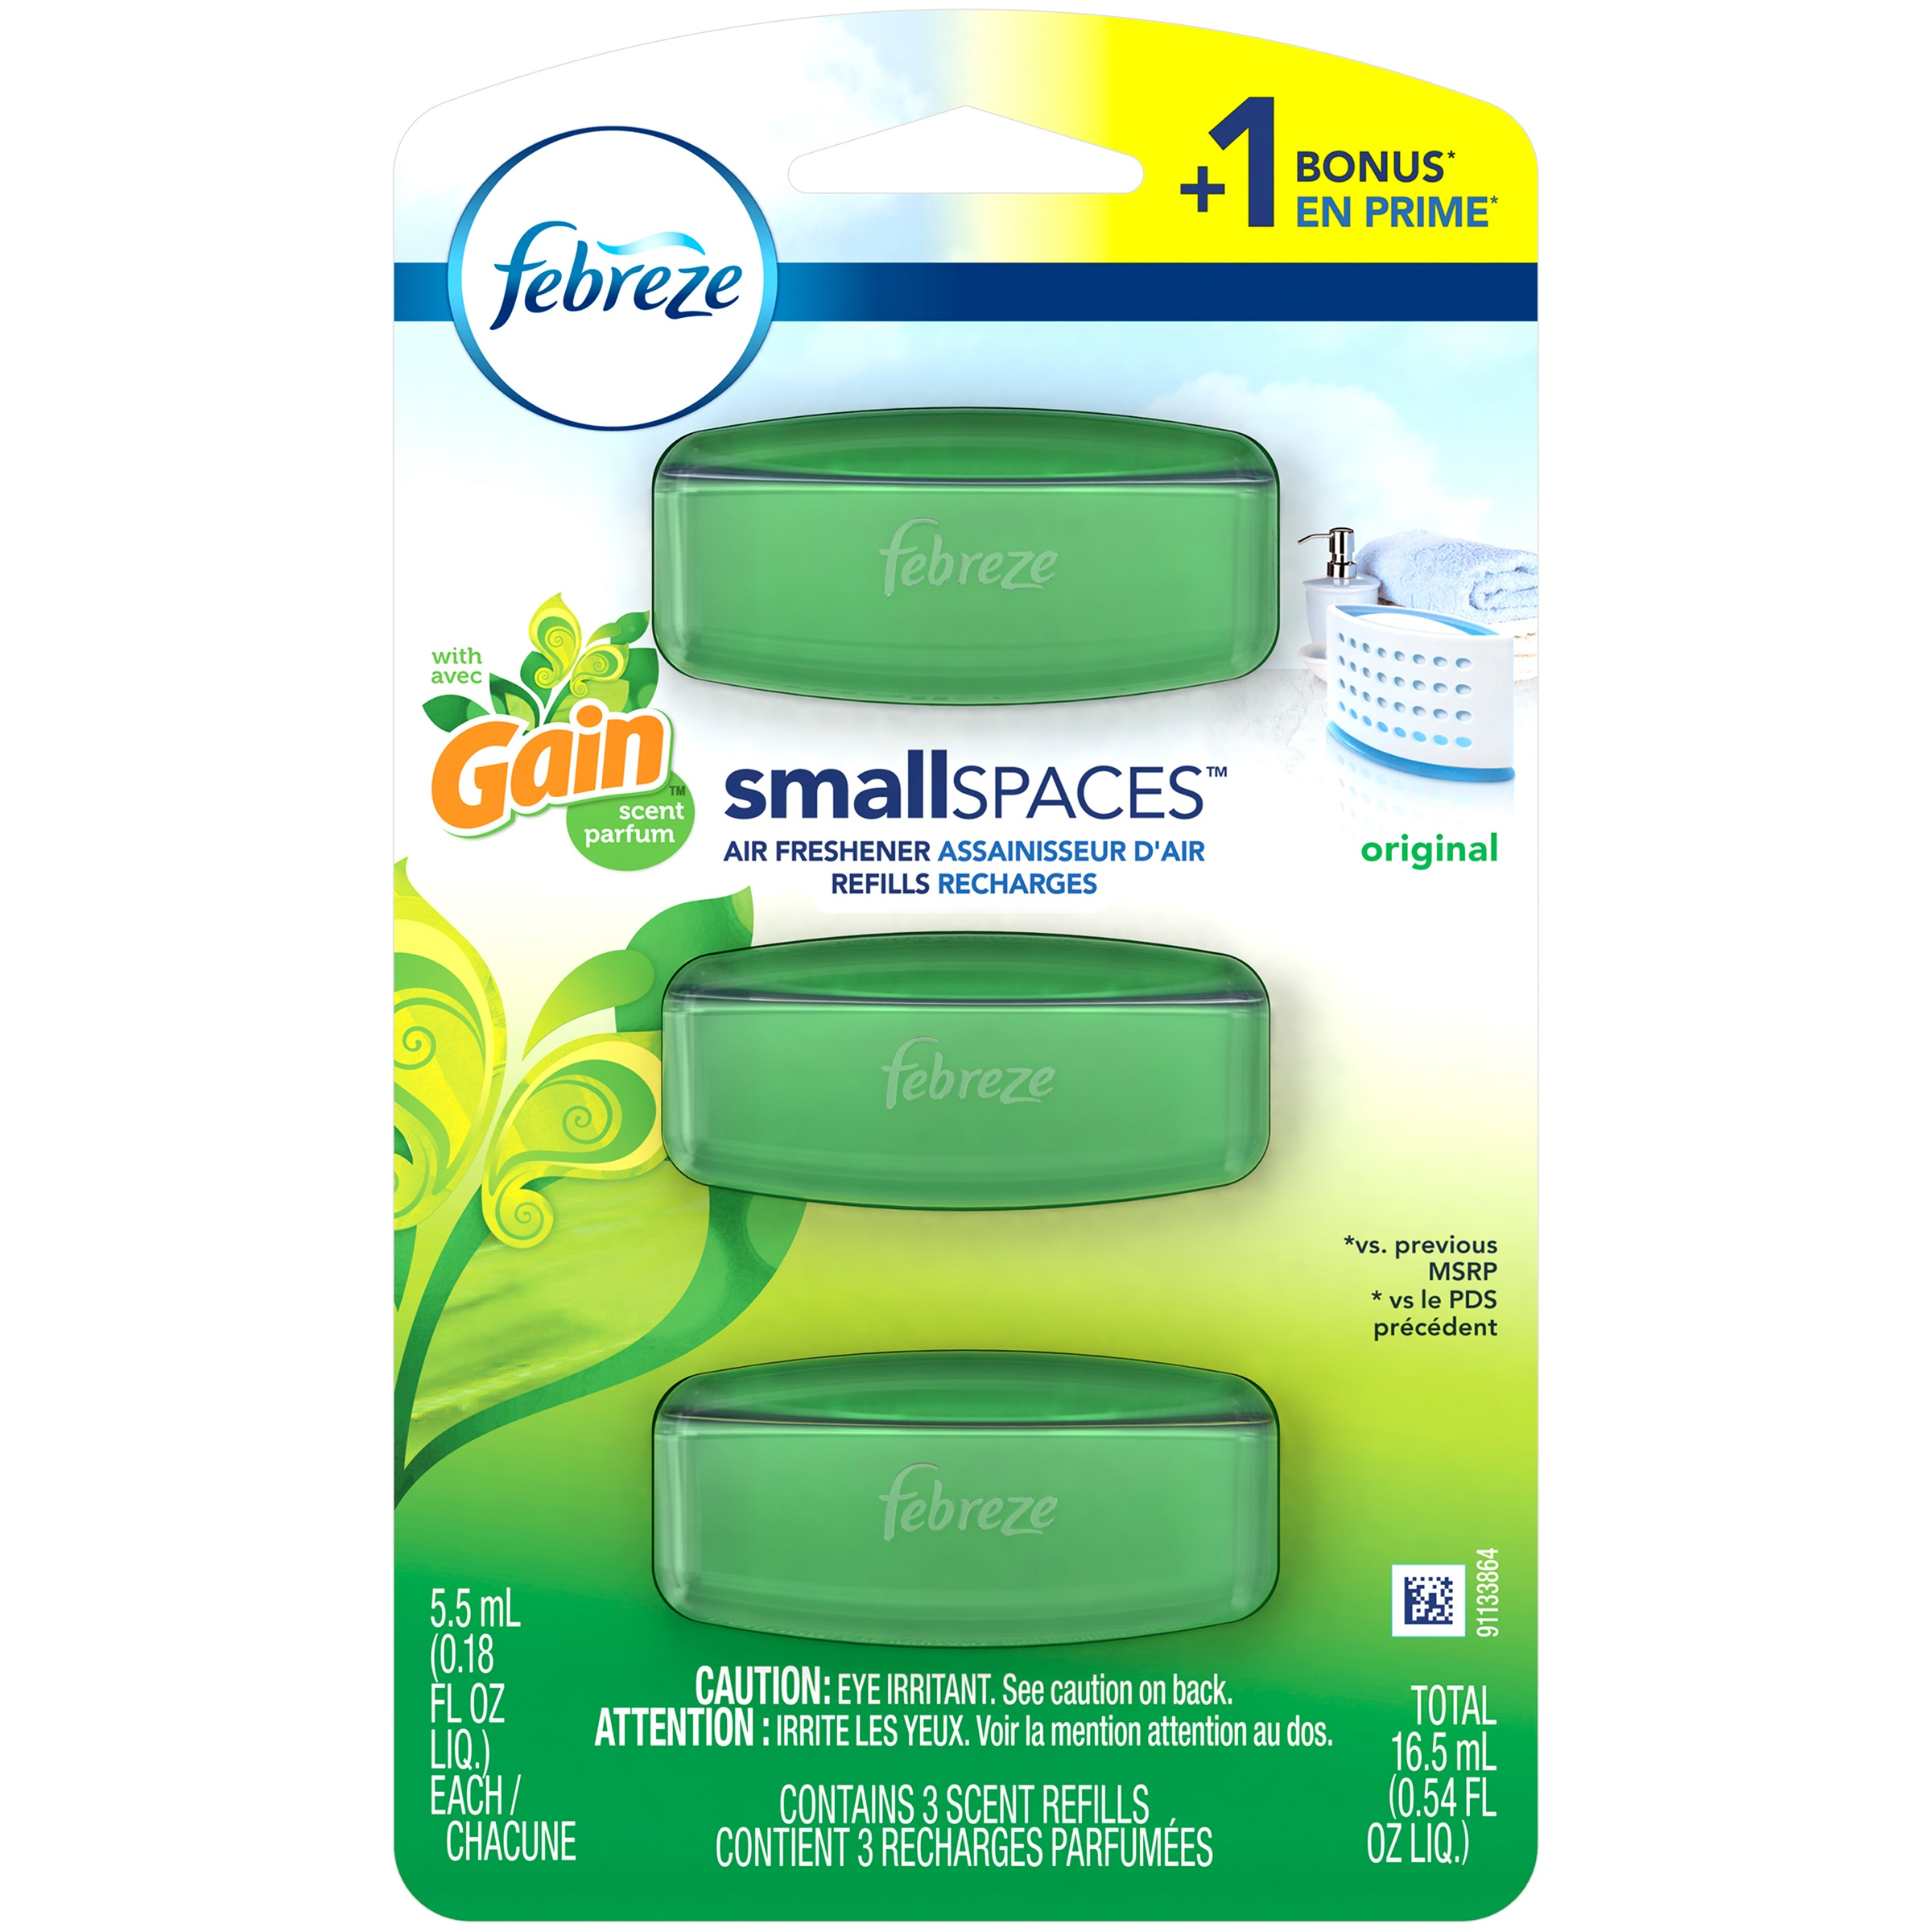 Febreze Small Spaces Air Freshener Refills with Gain Scent Original - 3ct